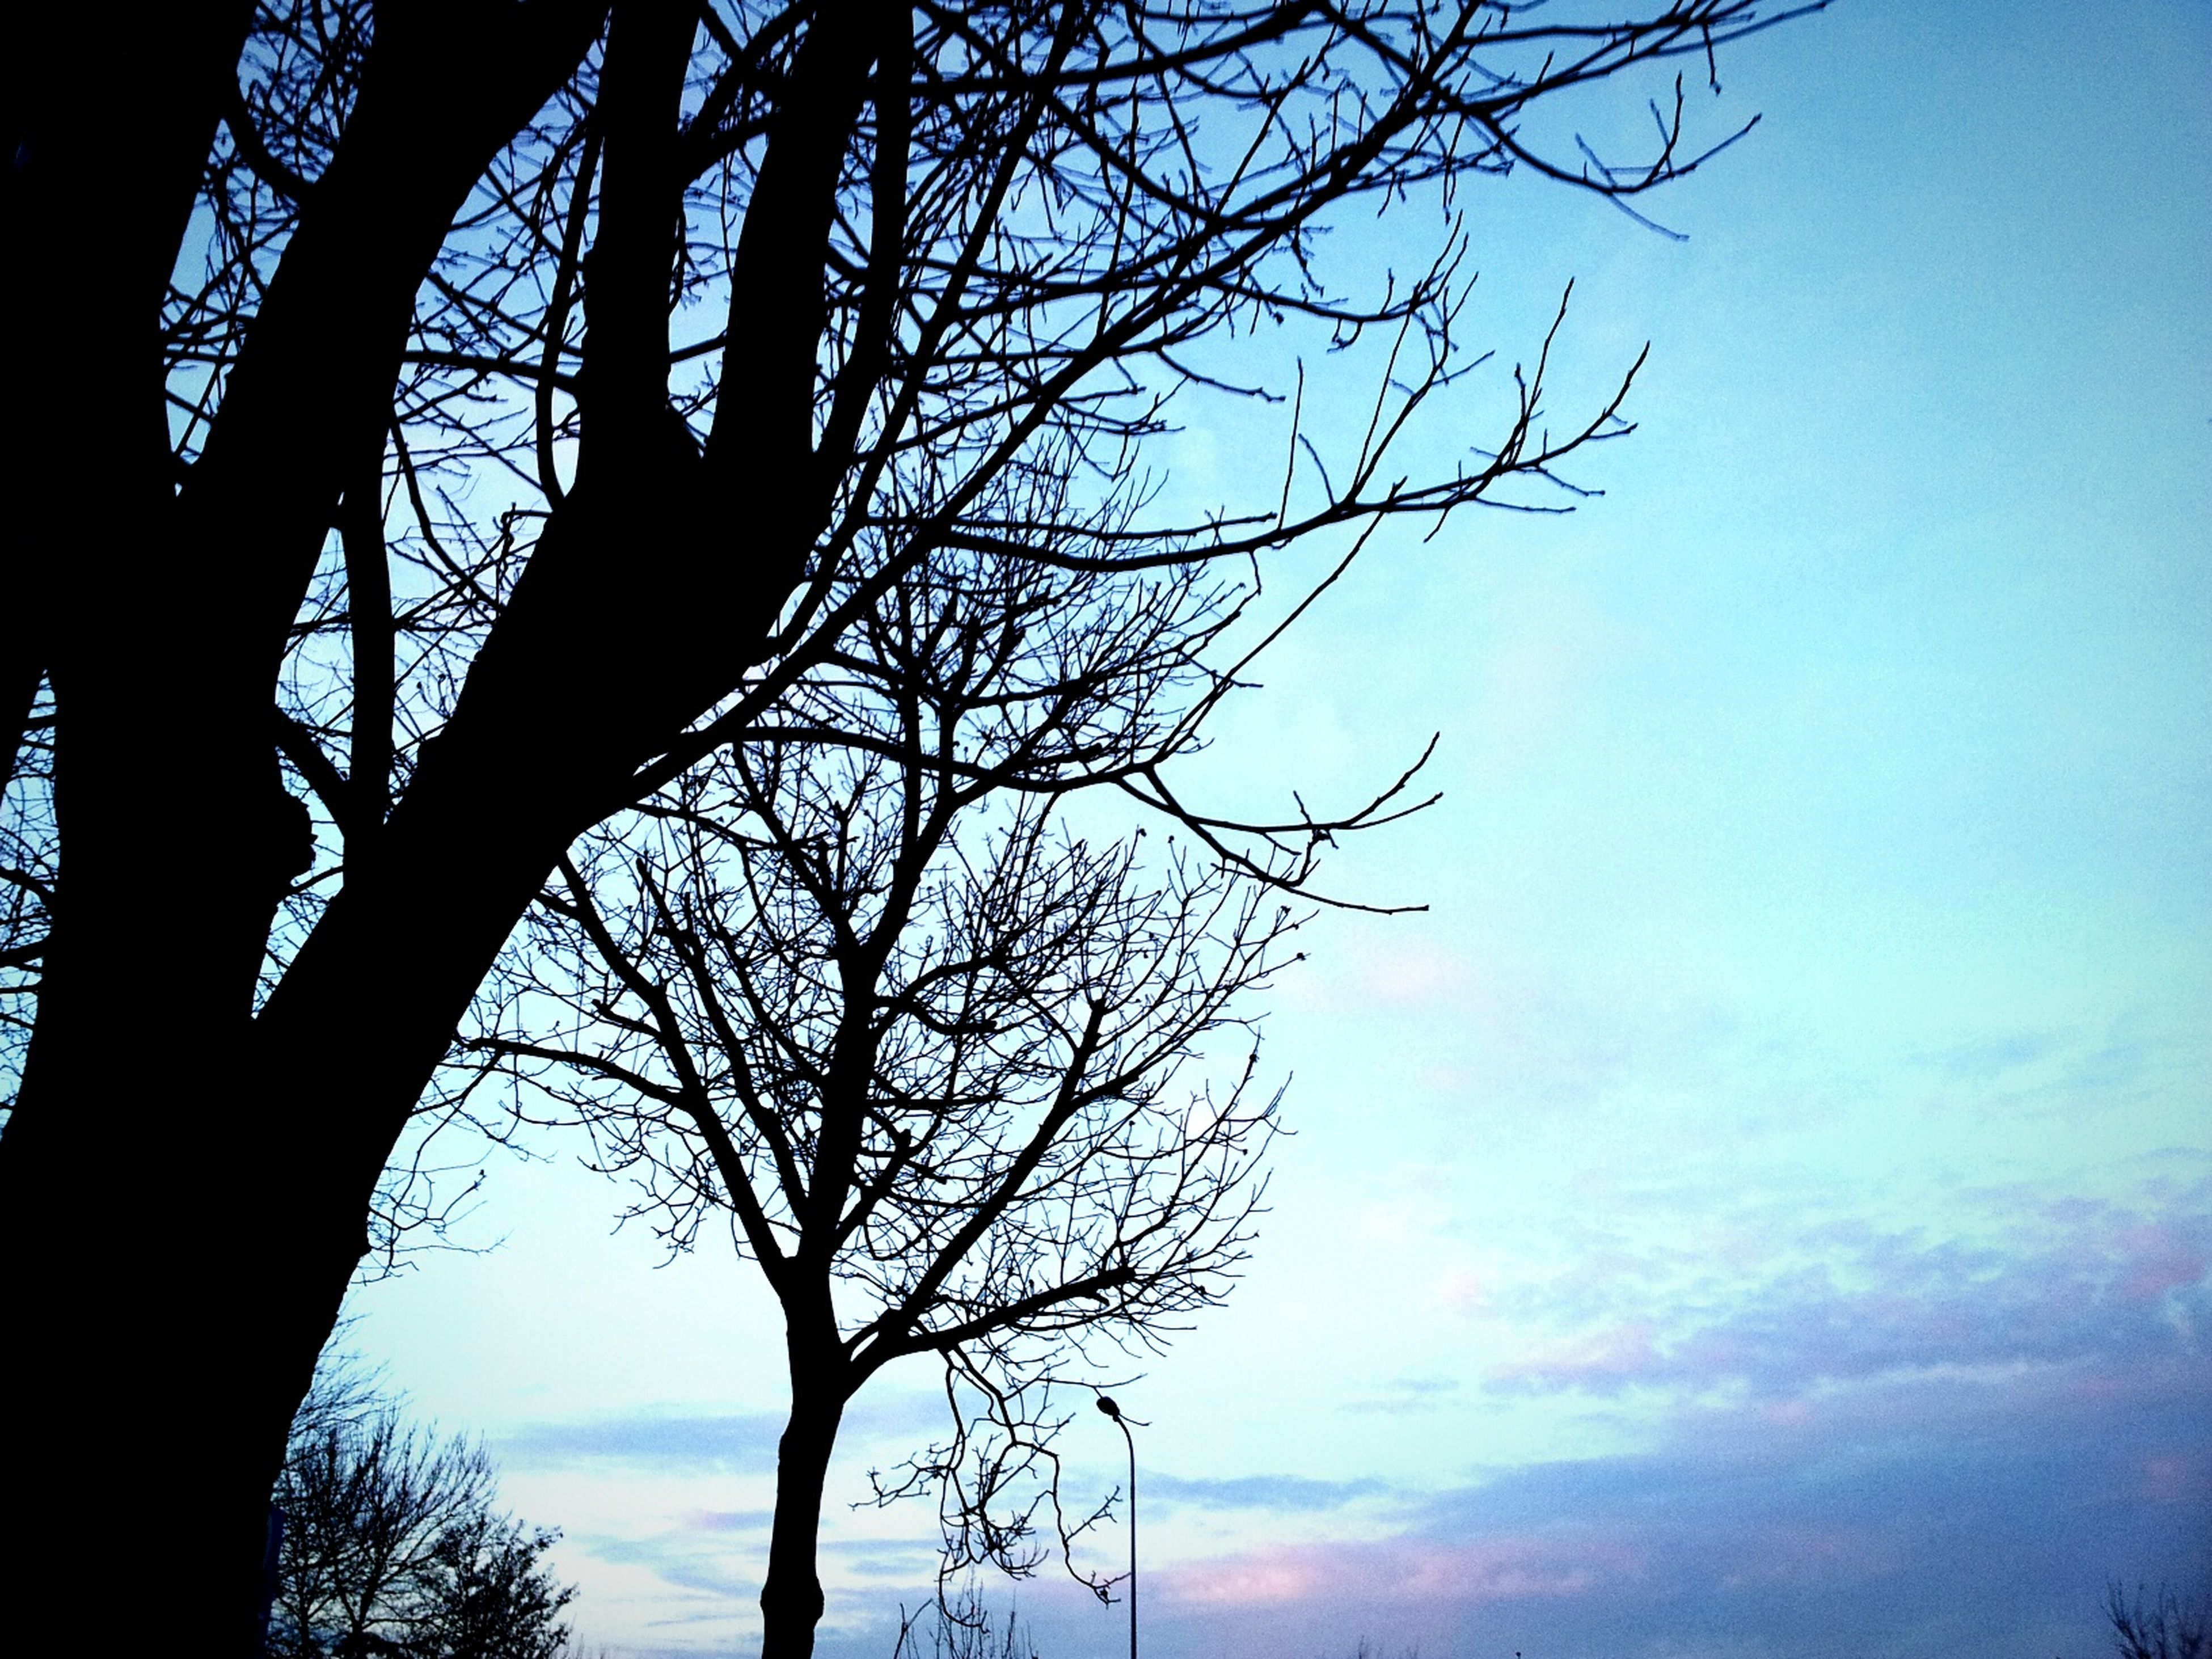 bare tree, tree, branch, low angle view, silhouette, sky, tranquility, tree trunk, beauty in nature, nature, scenics, tranquil scene, cloud - sky, single tree, sunset, cloud, outdoors, no people, growth, dusk